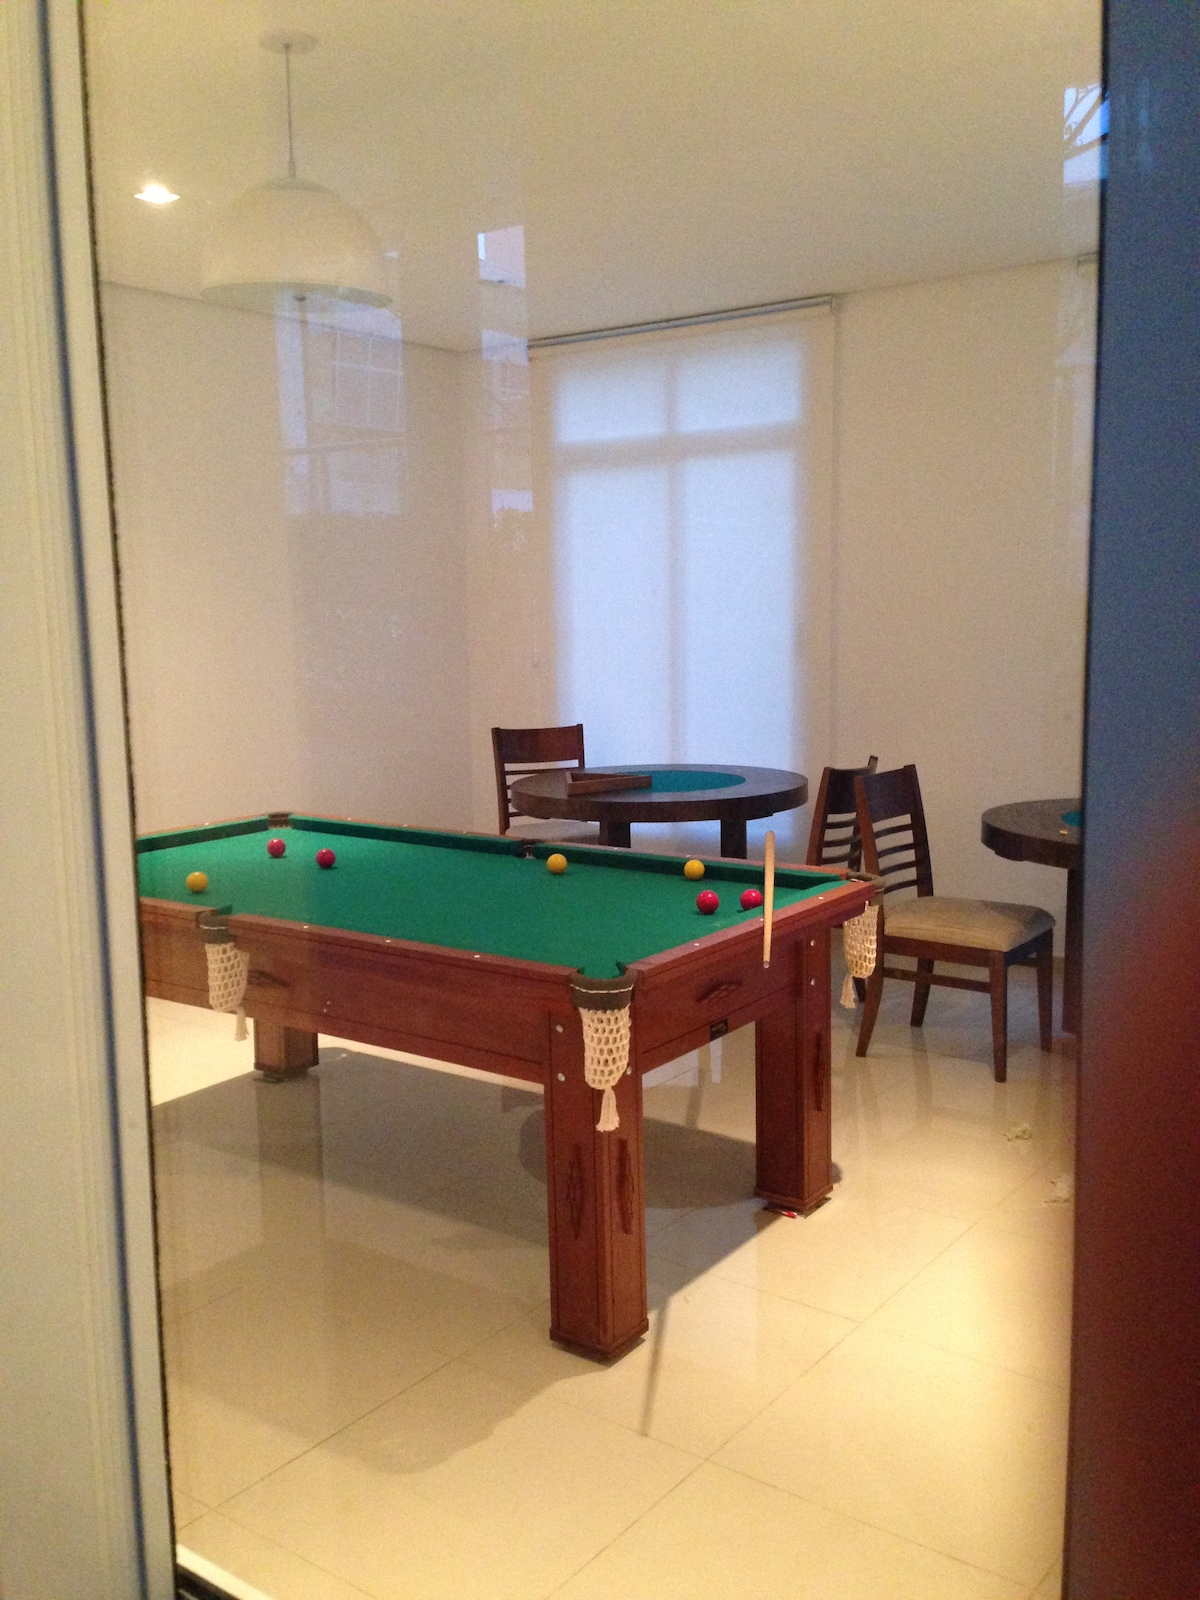 Apartment close to Paulista Avenue.